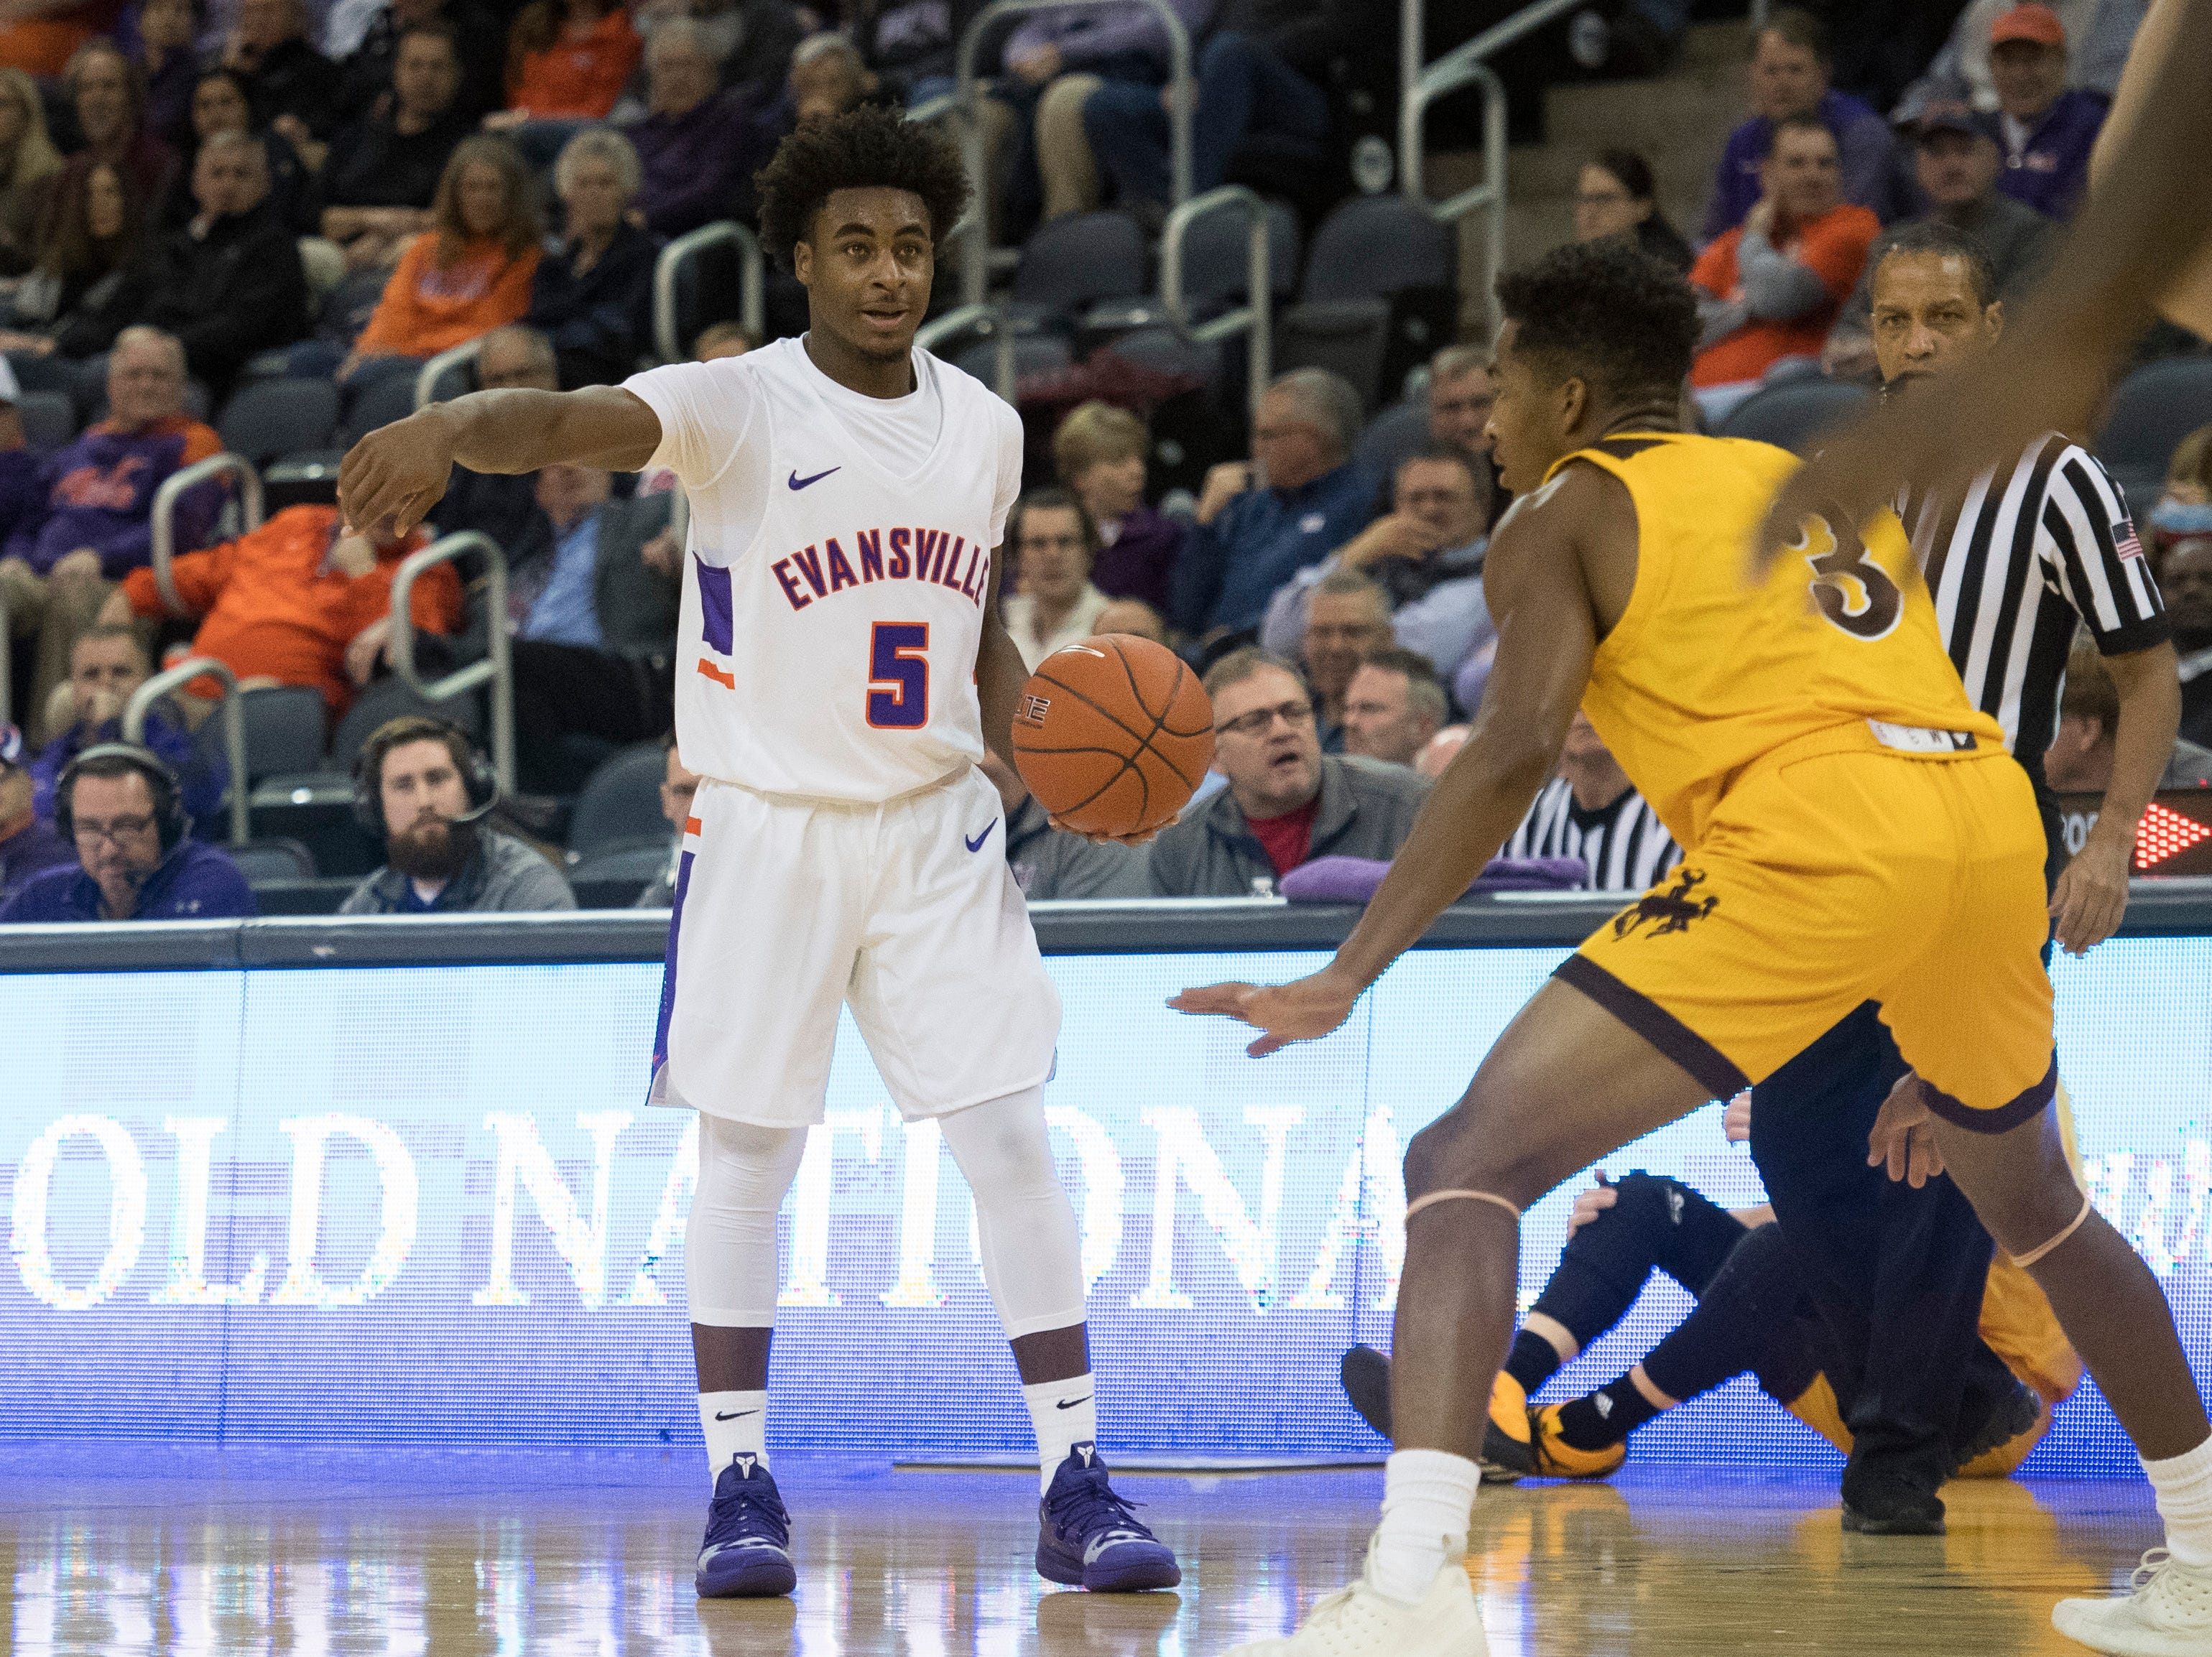 UE's Shamar Givance (5) communicates with a teammate during the UE vs Wyoming game at the Ford Center Wednesday, Nov. 28, 2018. UE won 86-76.